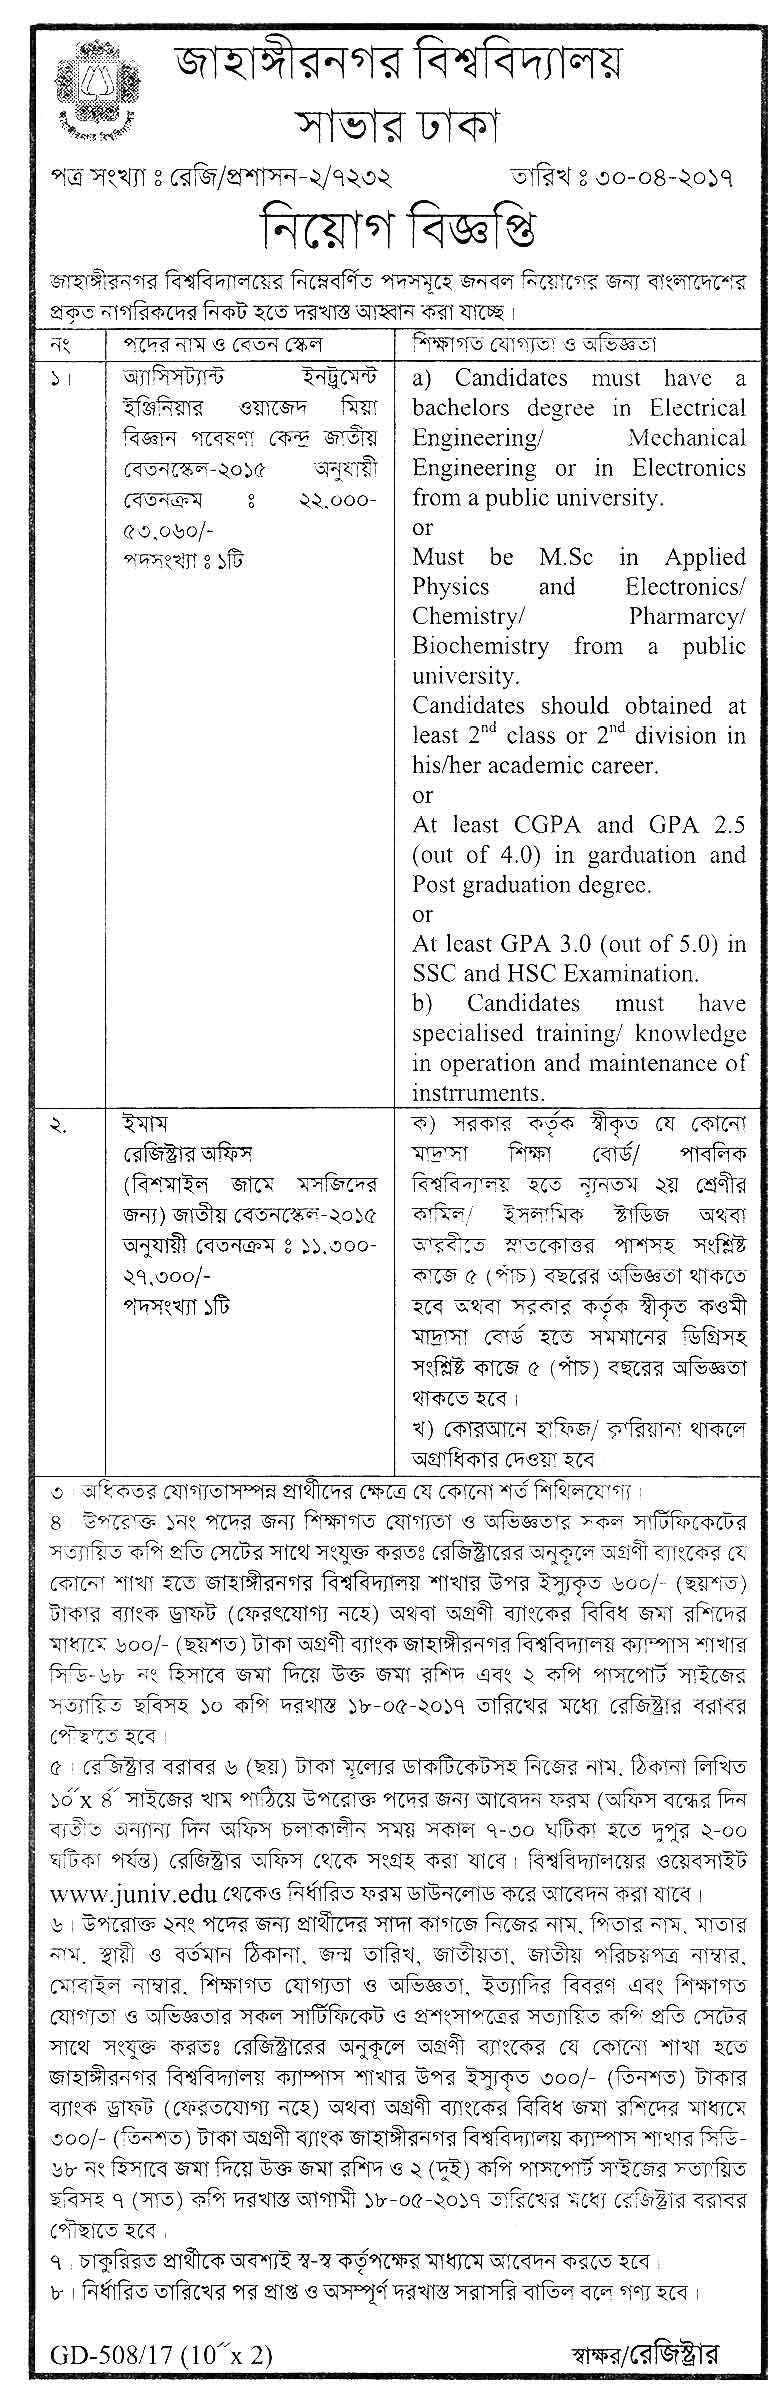 Organization Name: Jahangirnagar University (JU) Job Position: See Below Job Circular Image Published Date: 2017-05-03 Application Deadline 2017-05-18 Number of job vacancies: N/A Salary: According to government pay scale. Age Limit: See Circular Image Experience Requirements: See Circular Image Experience Requirements: See Circular Image Type of Jobs: Government University Jobs. Job Category: Full Time Other Benefits: As per Government Policy. Jobs Location: Dhaka. Job Source: Somokal Newspaper Download Jahangirnagar University (JU) Job Circular 2017